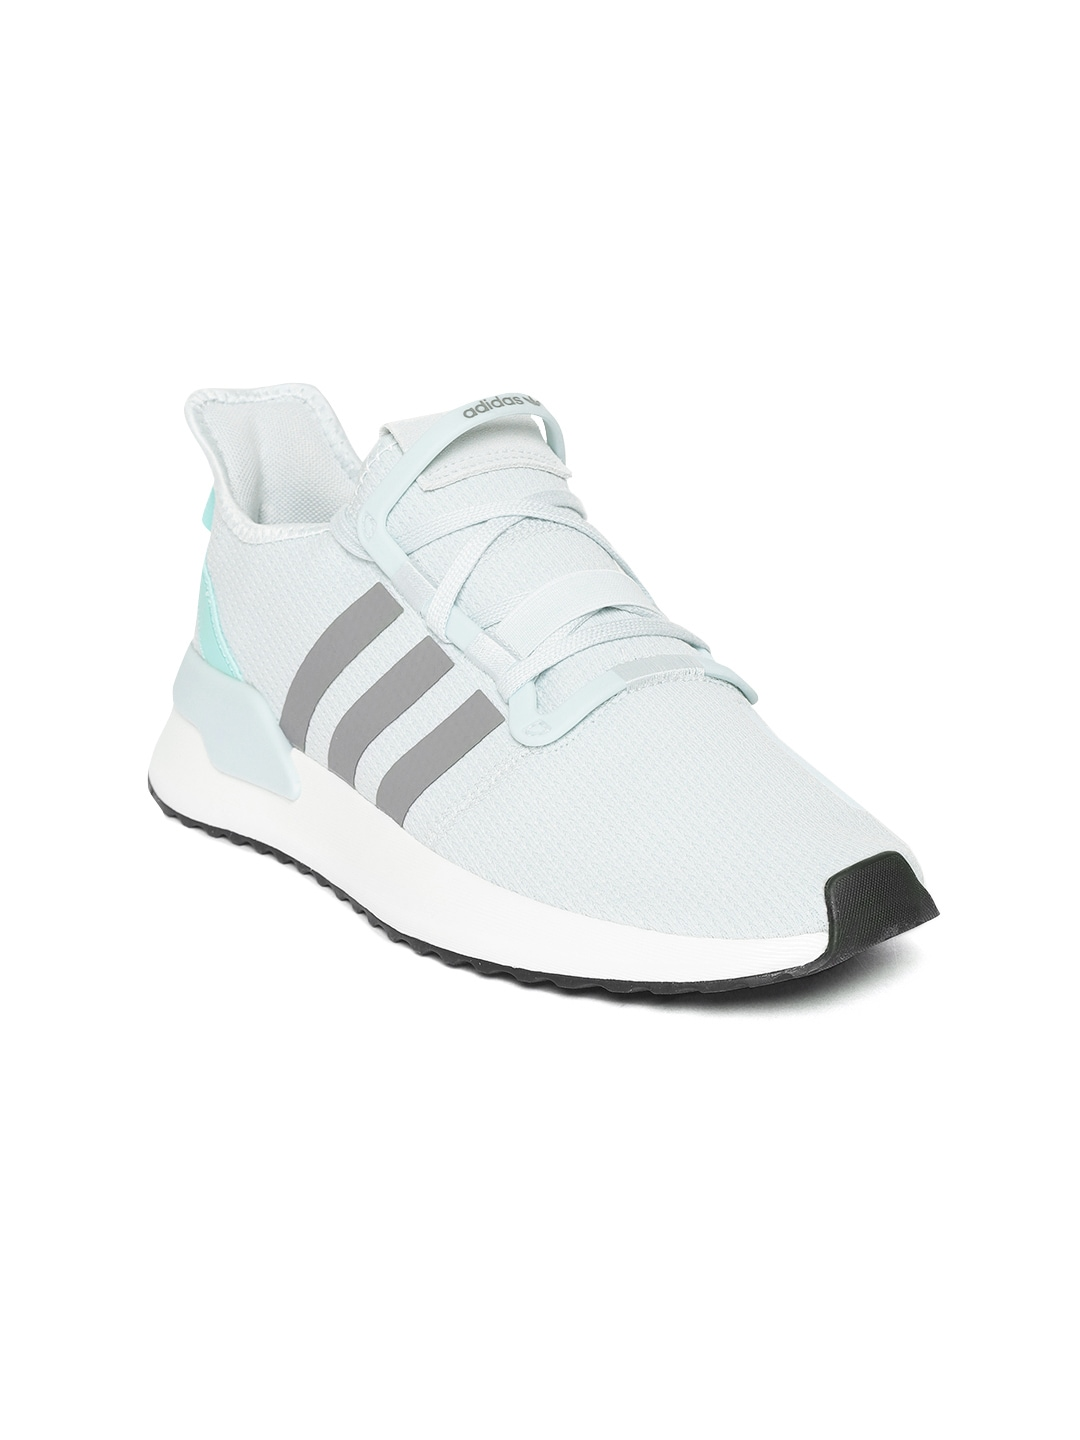 f148e782a Mens Adidas Shoes - Buy Adidas Shoes for Men Online in India